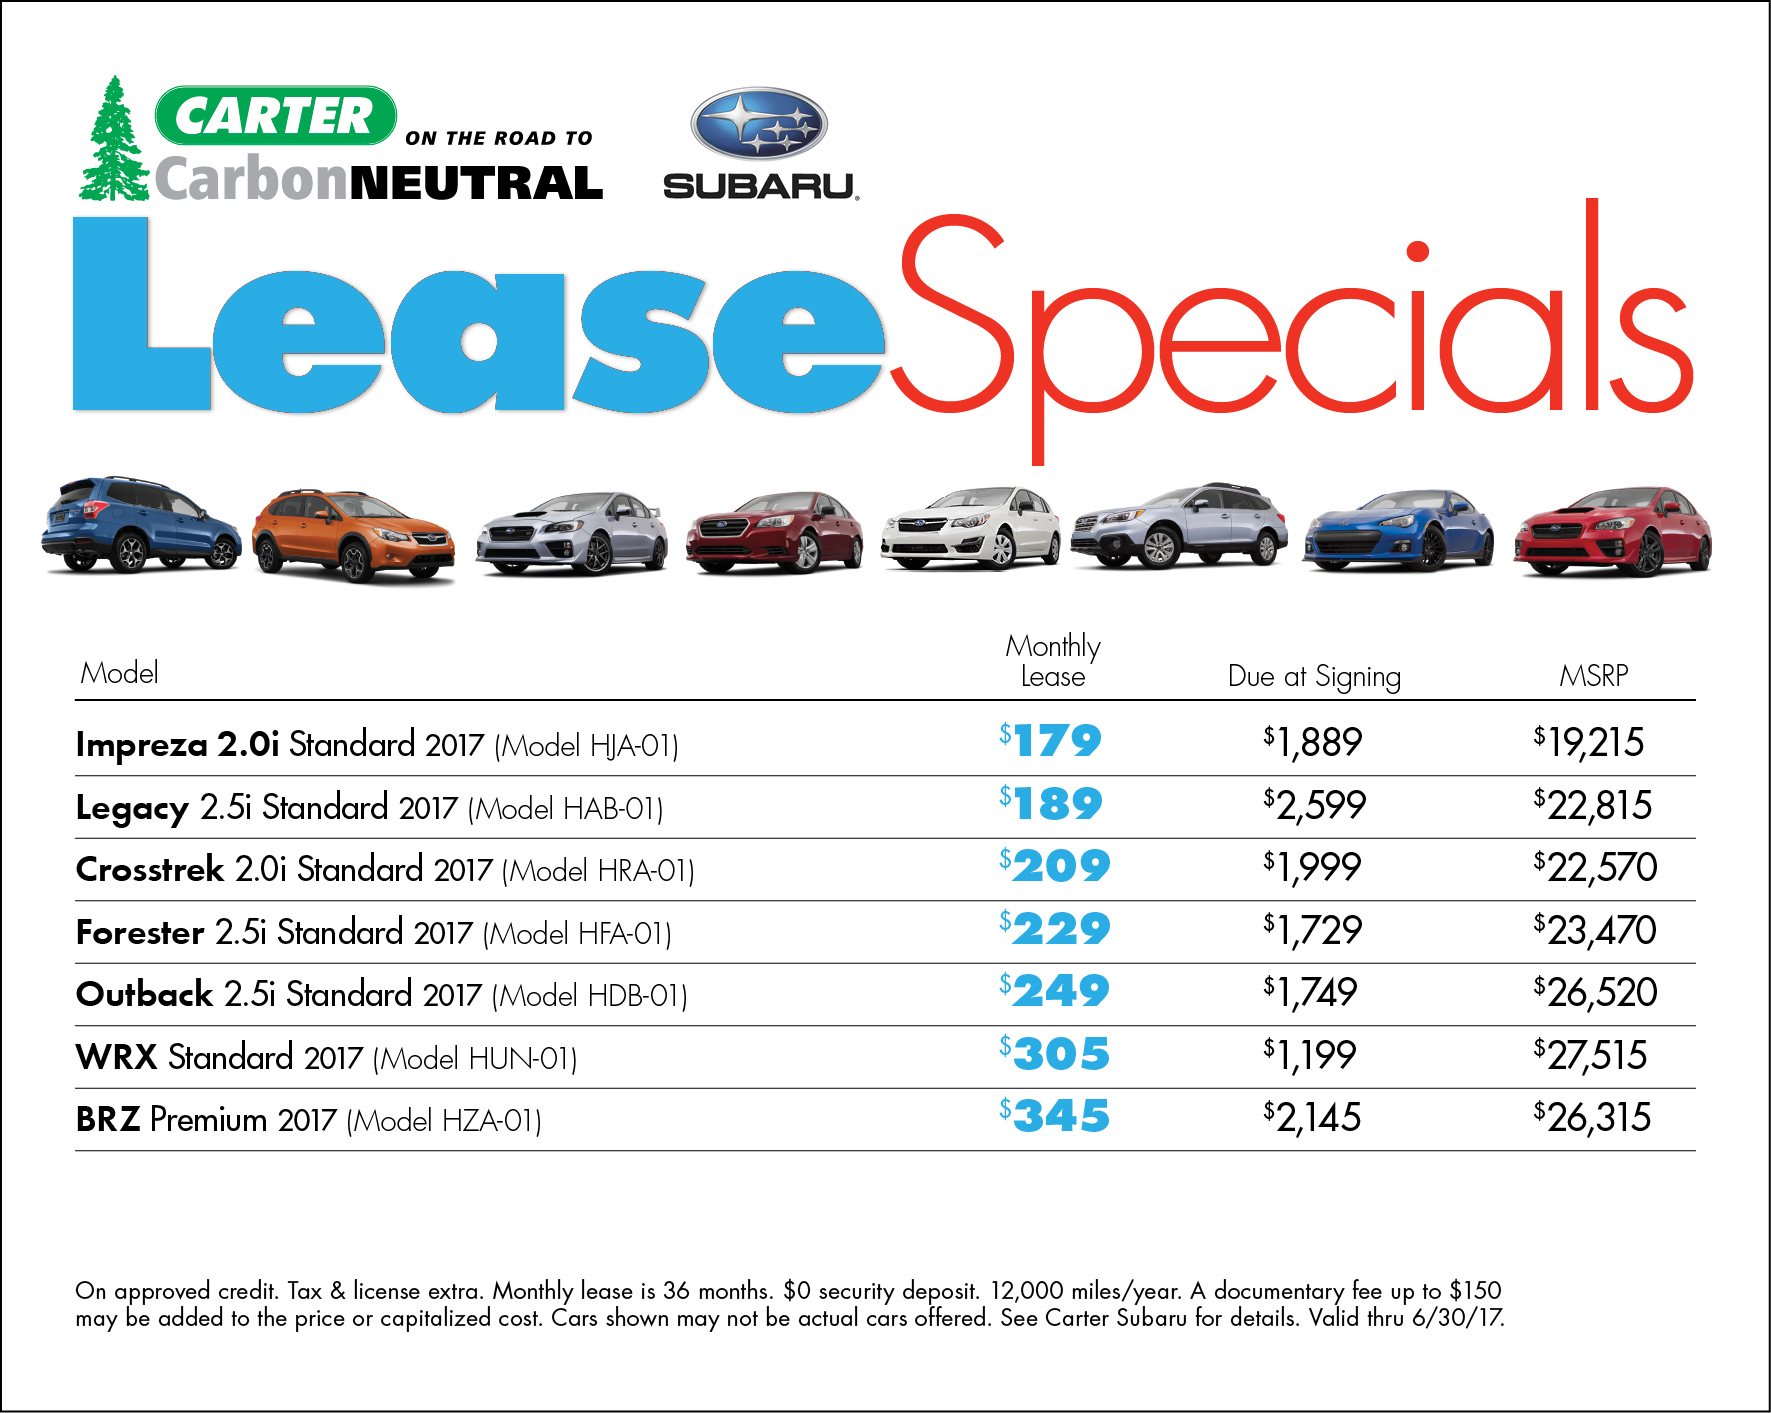 Subaru Low Payment Lease Specials Available in Seattle, WA